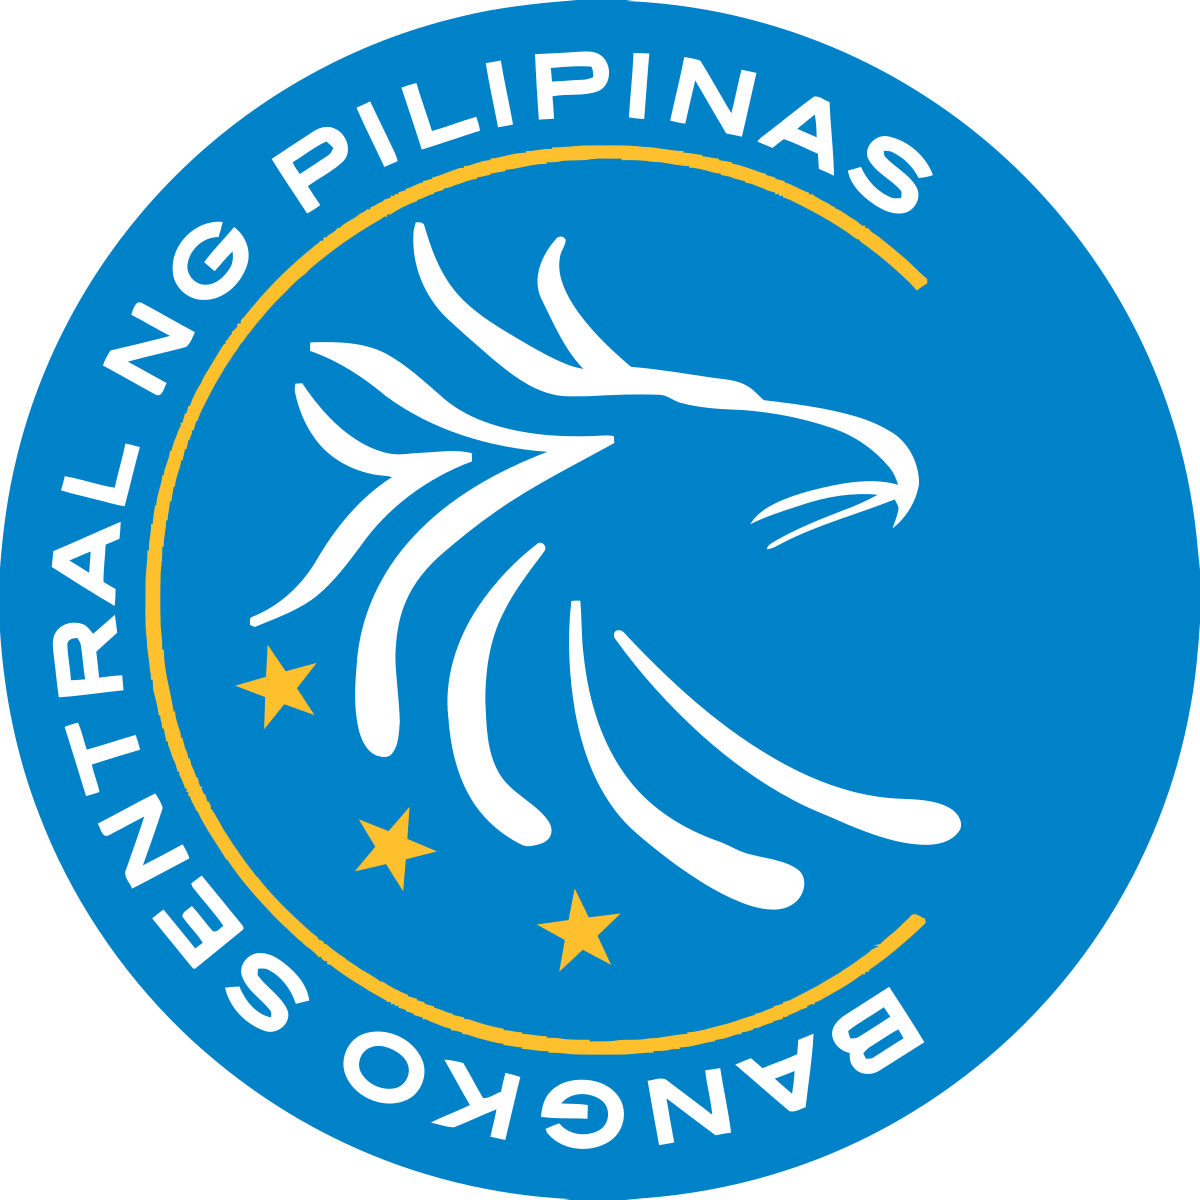 Bangko Sentral Ng Pilipinas, Investment Innovators: Wealth Summit